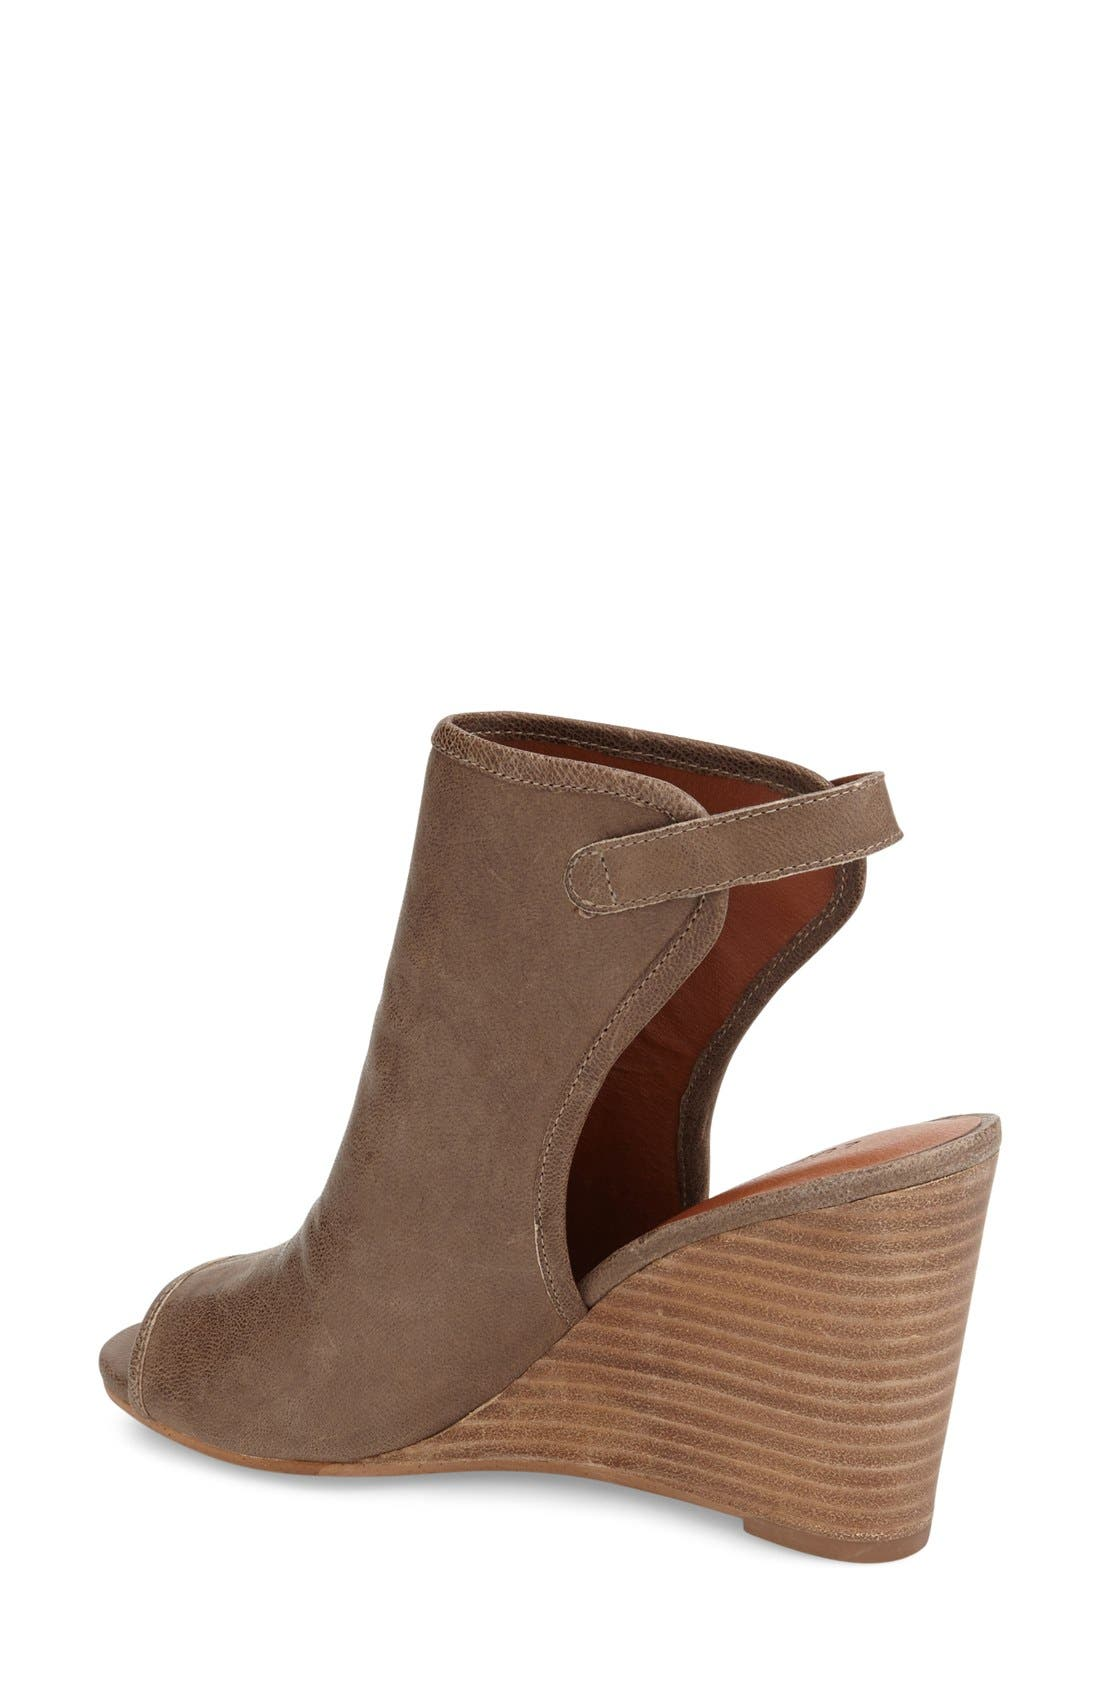 Alternate Image 2  - Lucky Brand 'Risza' Open Toe Wedge Bootie (Women)